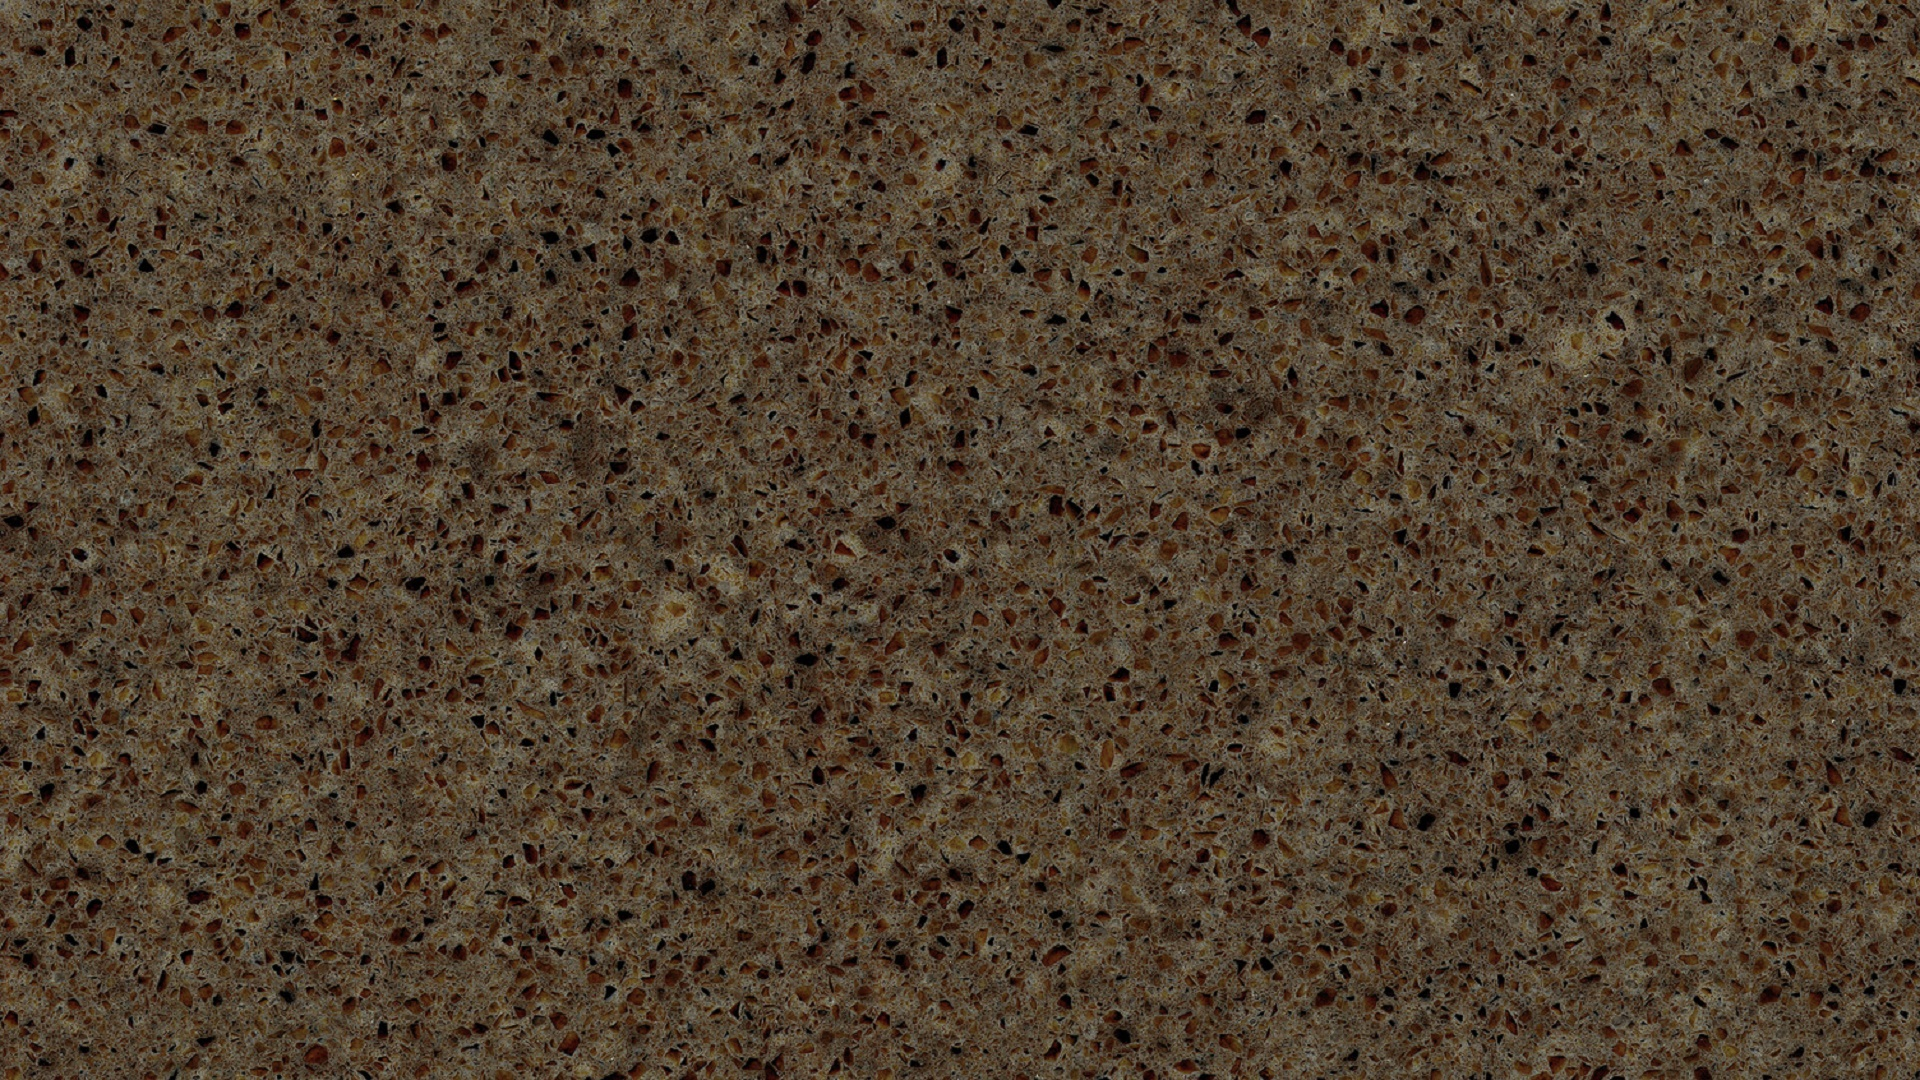 Taupe Quartz Countertop Quartz Countertop Color Selector Euro Stone Craft Zodiaq Warm